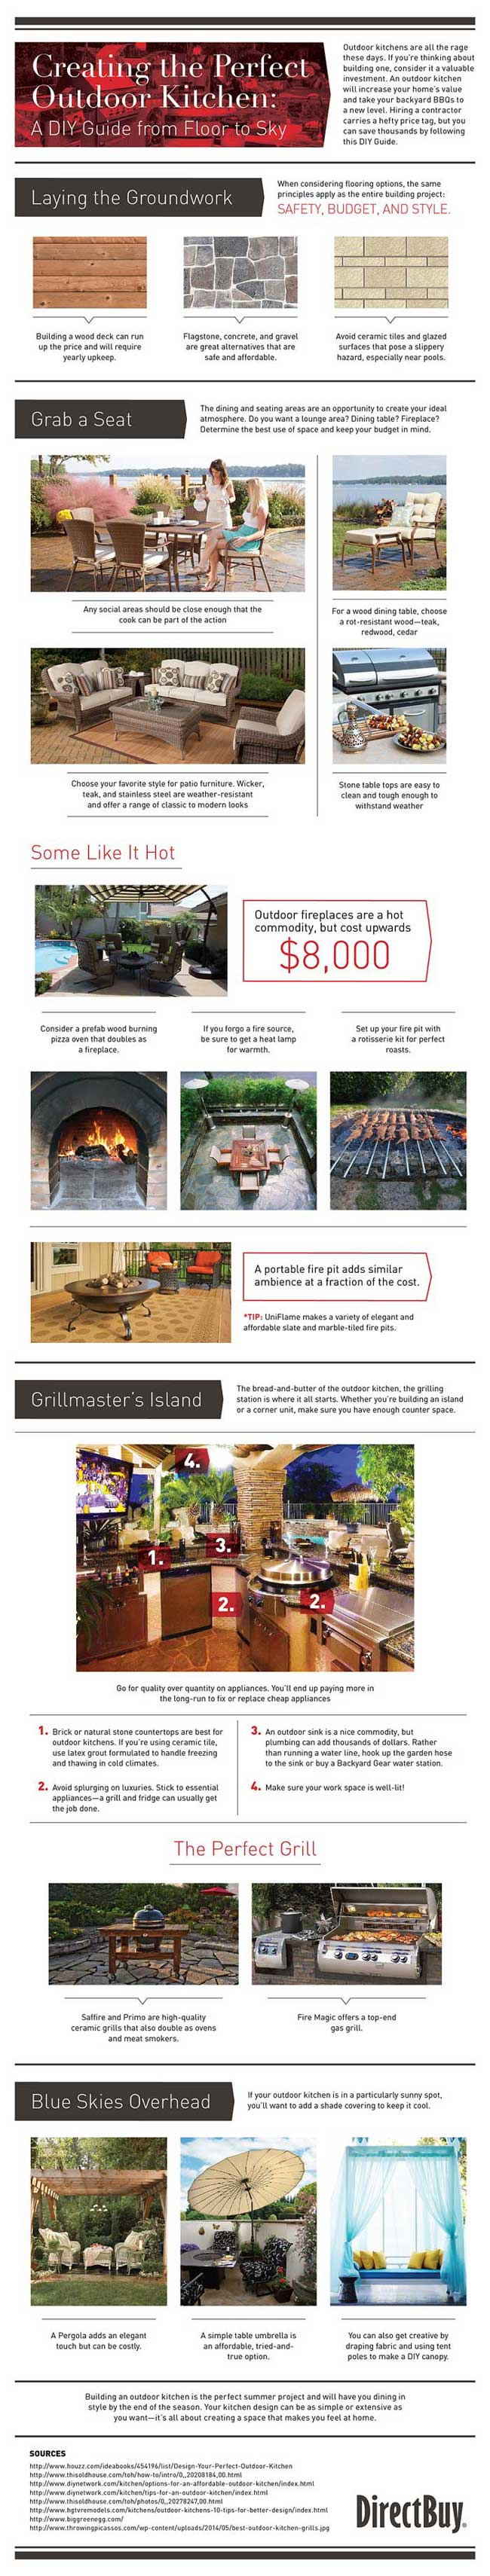 Infographic - Creating the Perfect Outdoor Kitchen